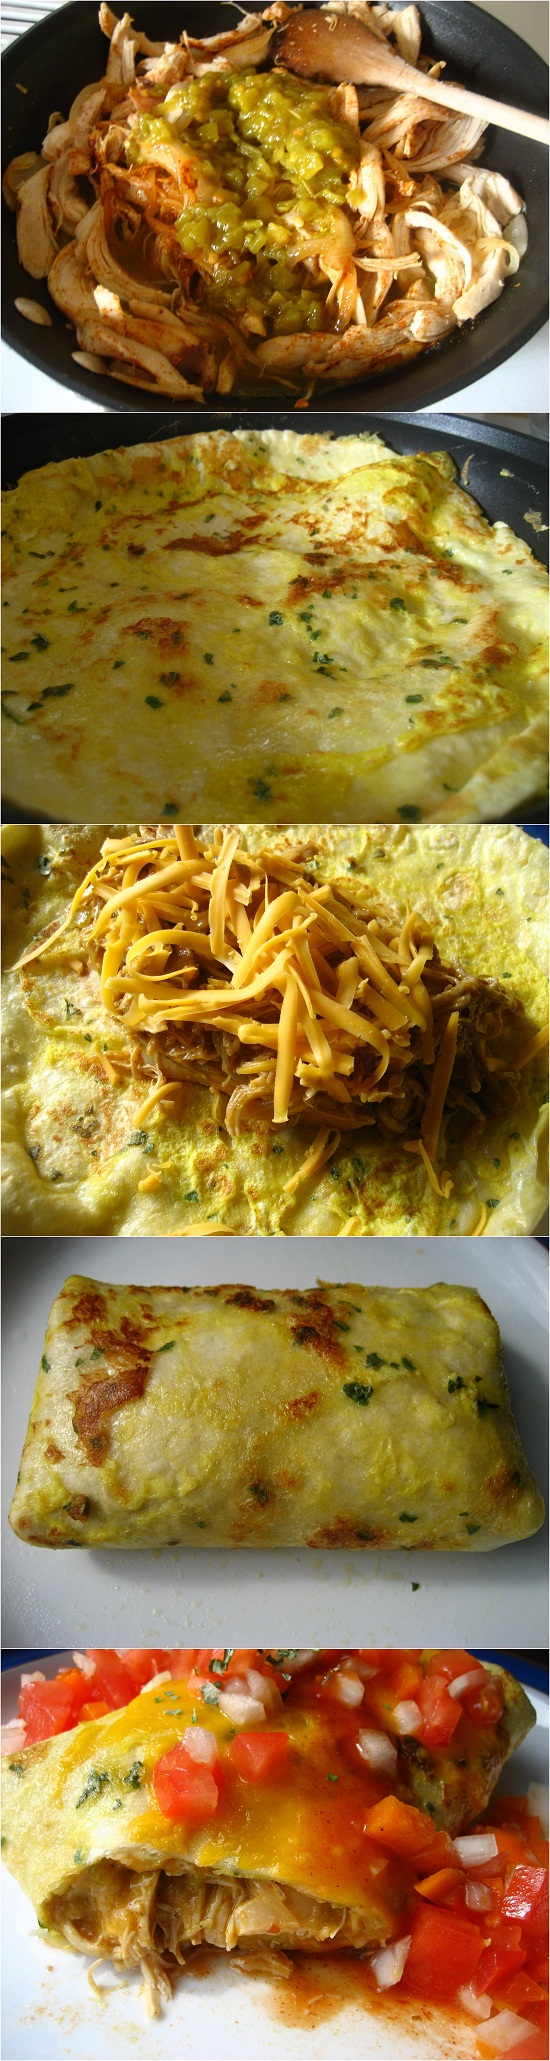 Chicken-Egg-Wrap-Burrito-Recipe